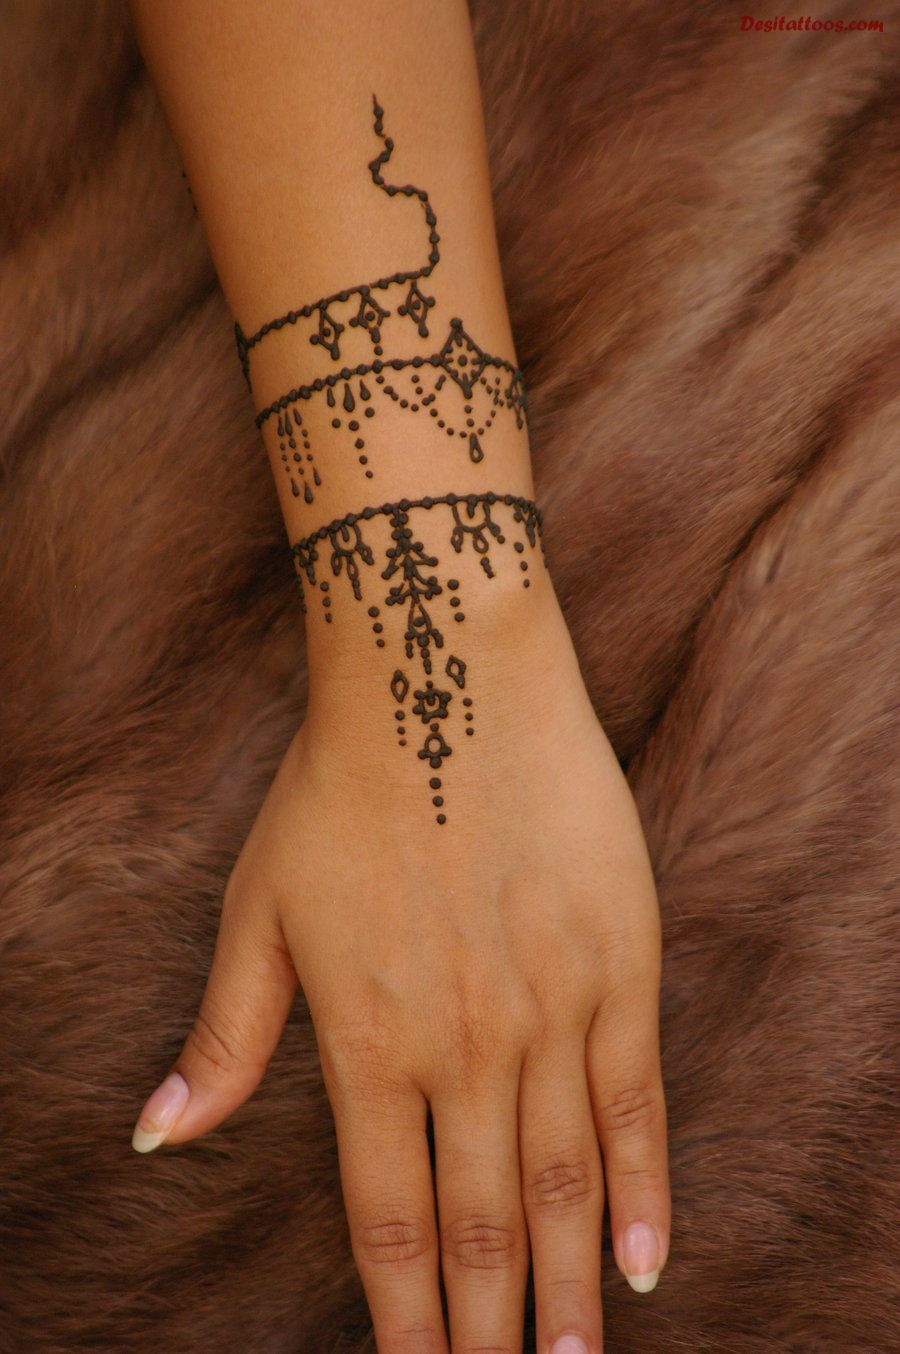 Tattoo Design Gallery - Free Ideas for Tribal, Butterfly, Dragon, Fairy, Flower, Star, Celtic, Lower Back, and More Tattoos